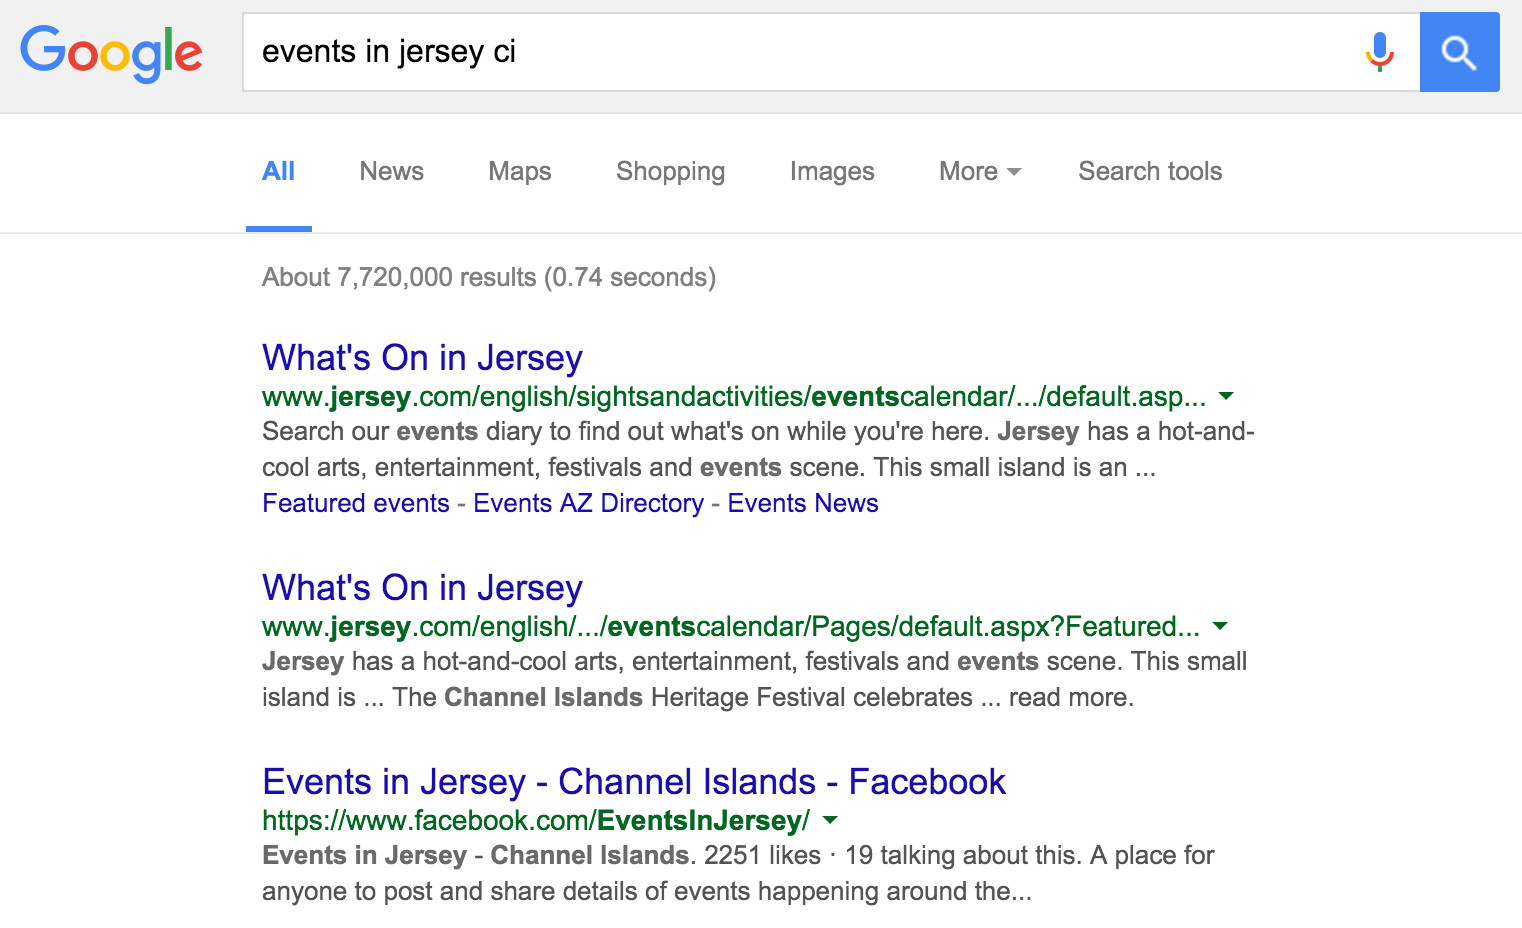 events in jersey ci on google.je